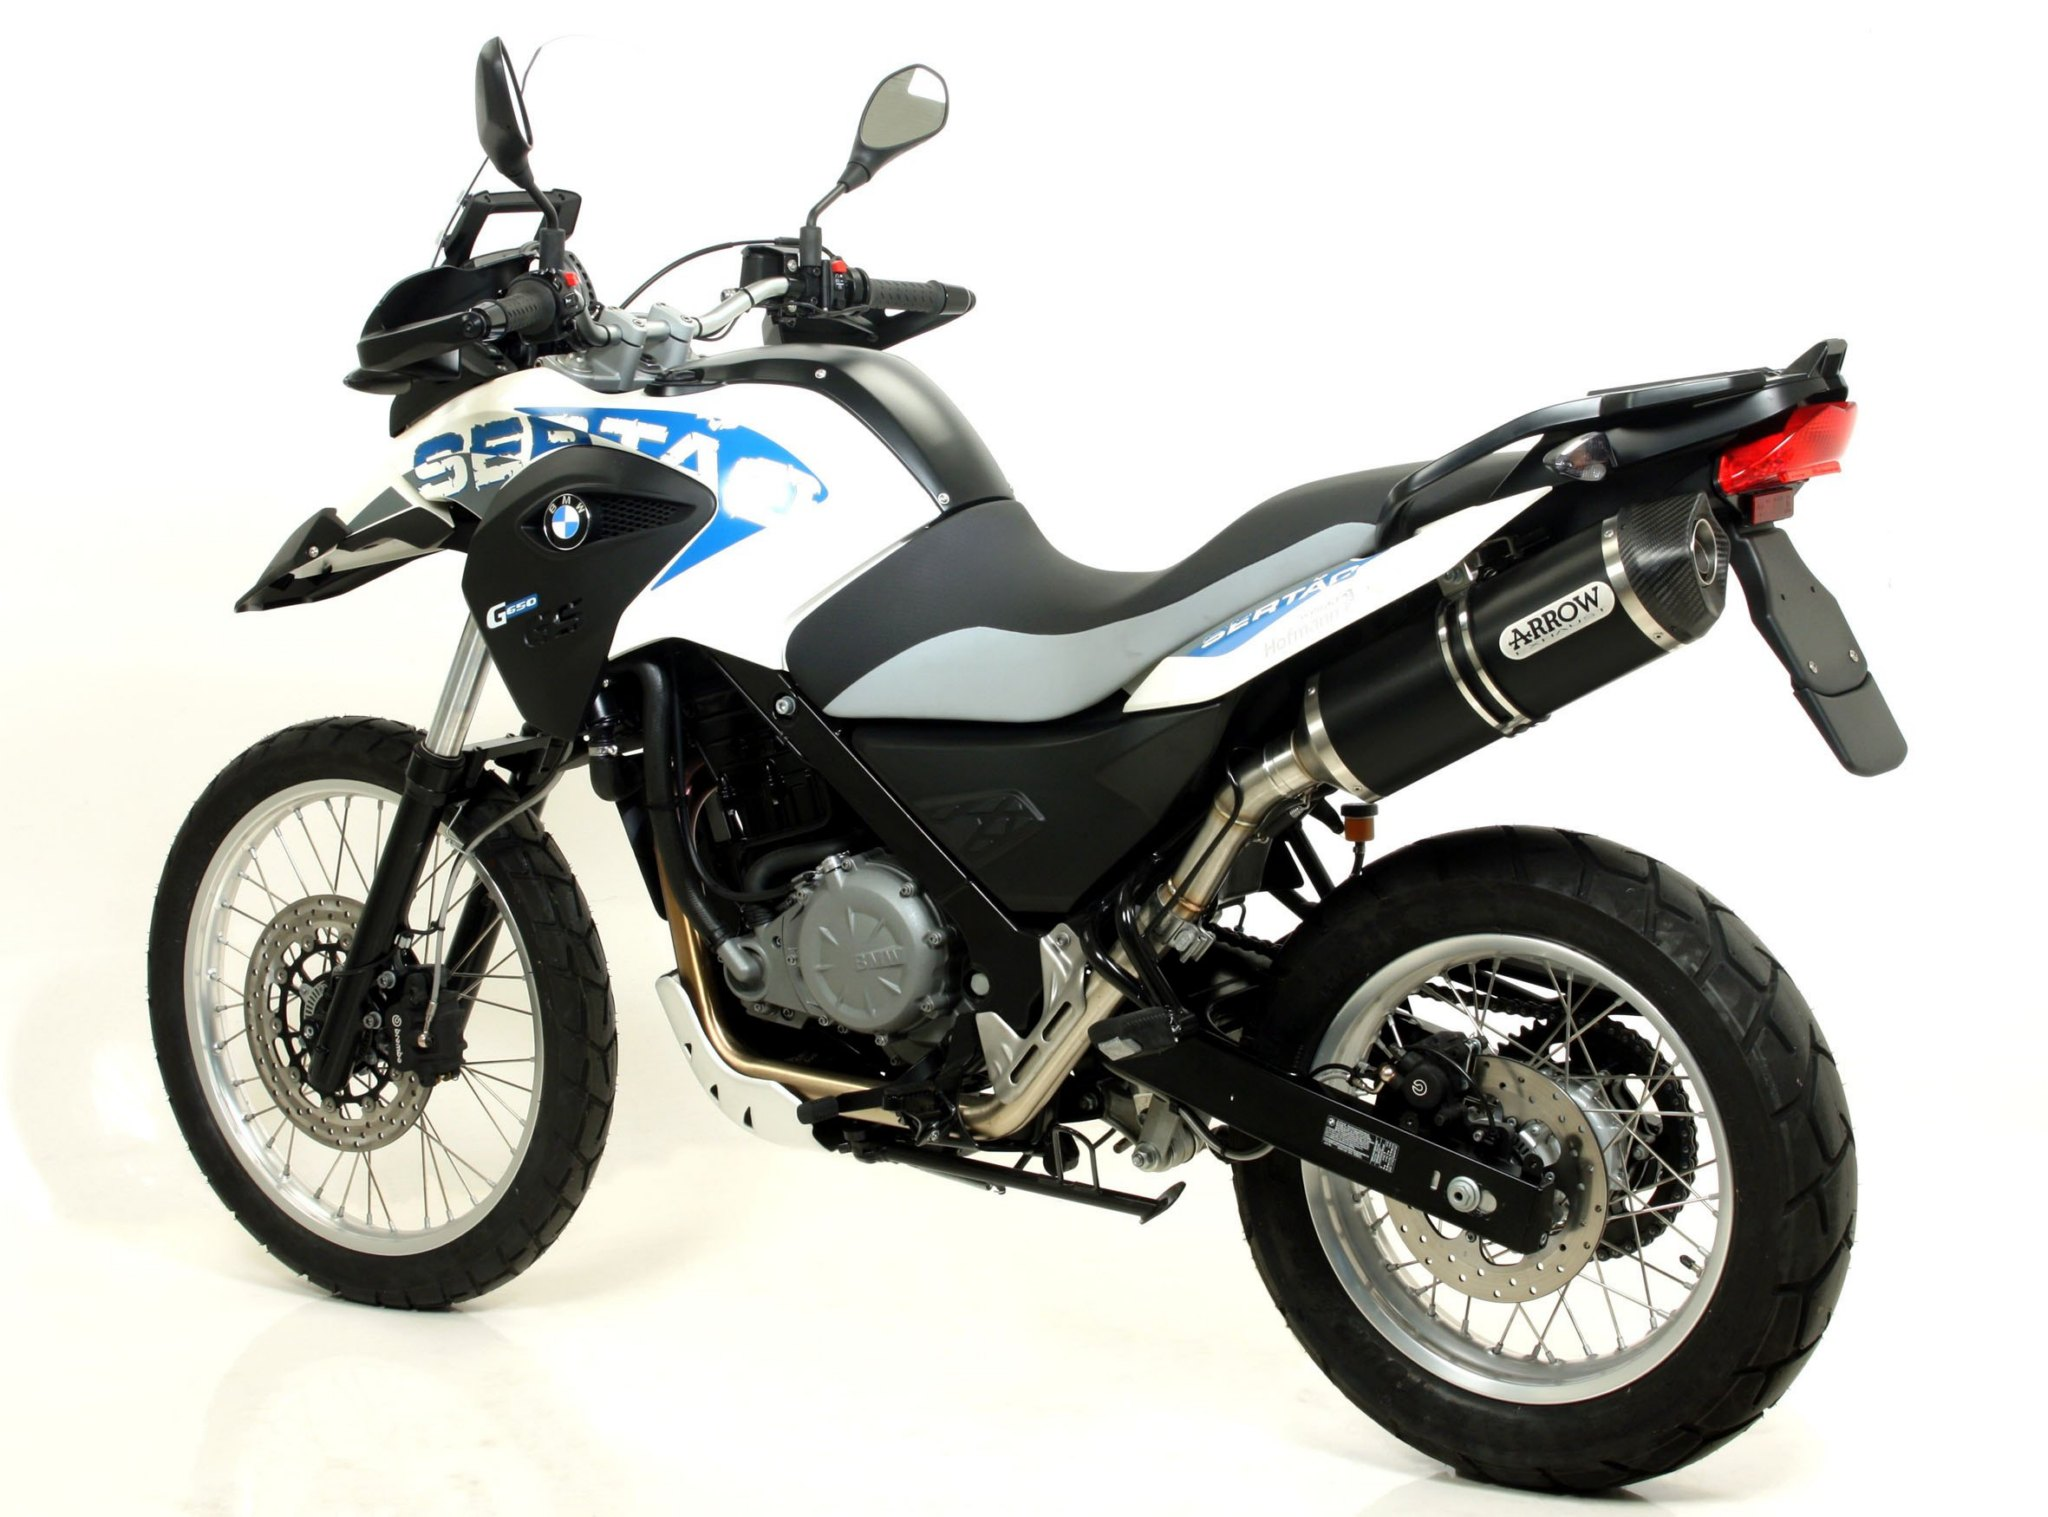 Bmw G650gs Sertao And F700gs Receive New Arrow Exhausts